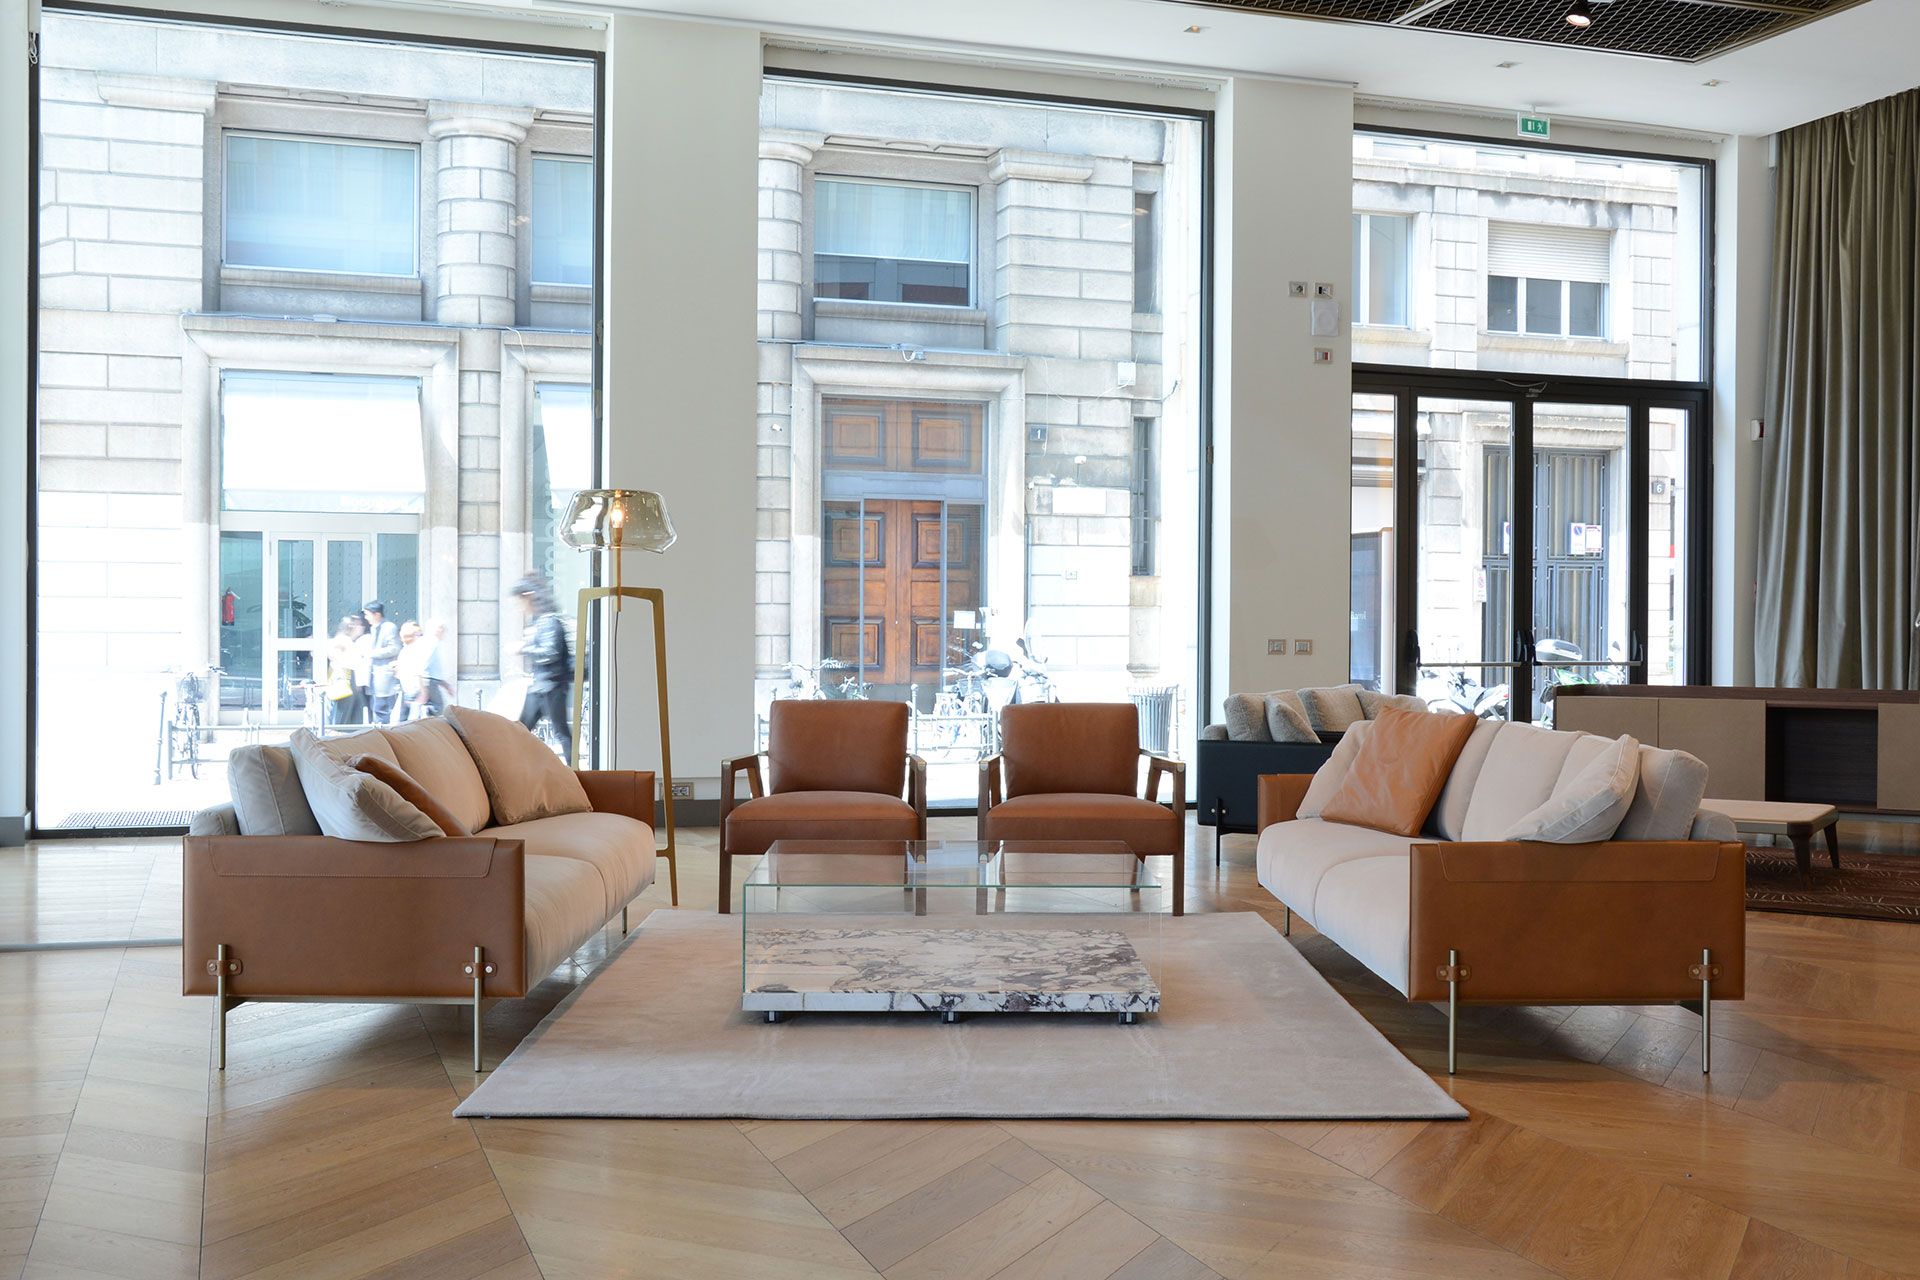 New Home Collection Of Handcrafted Aston Martin Furniture Previews At Milan Design Week Arab Motor World